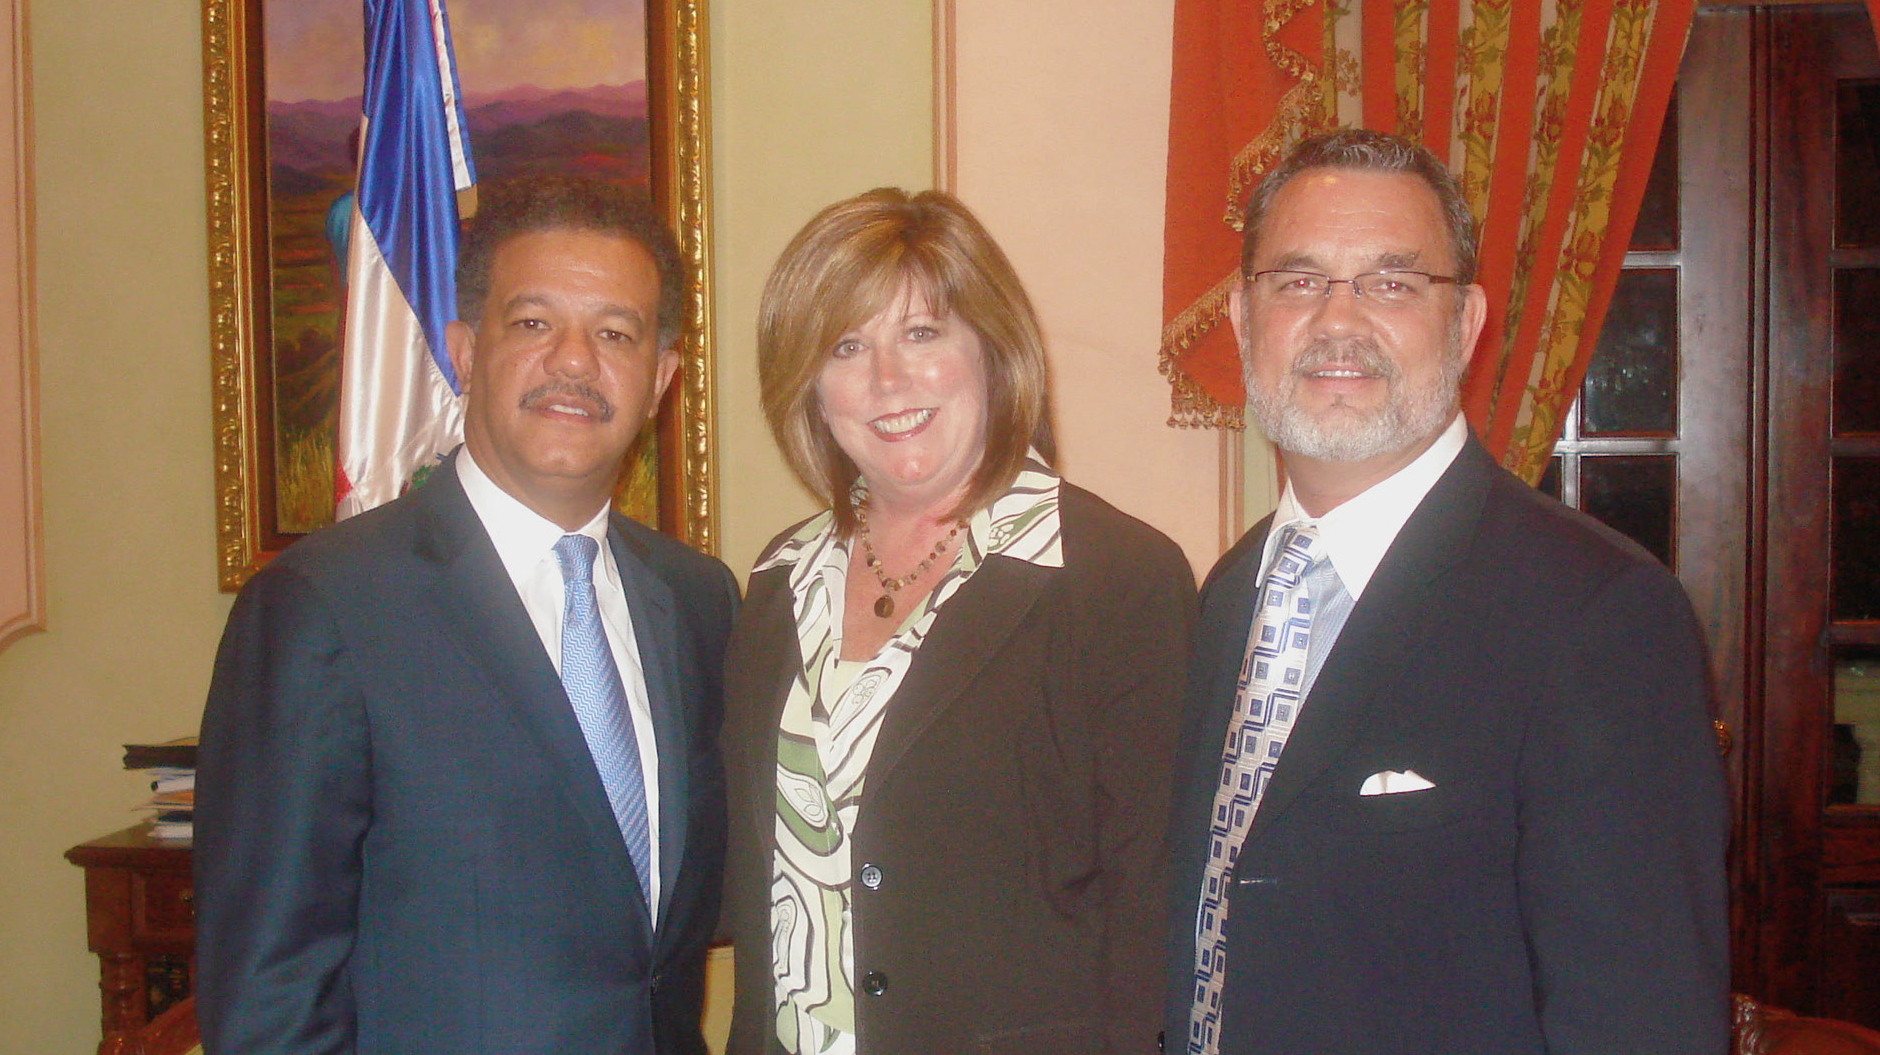 Kurt and Debi Holthus with former Presidente' Leonel Fernandez in the Presidential Palace.